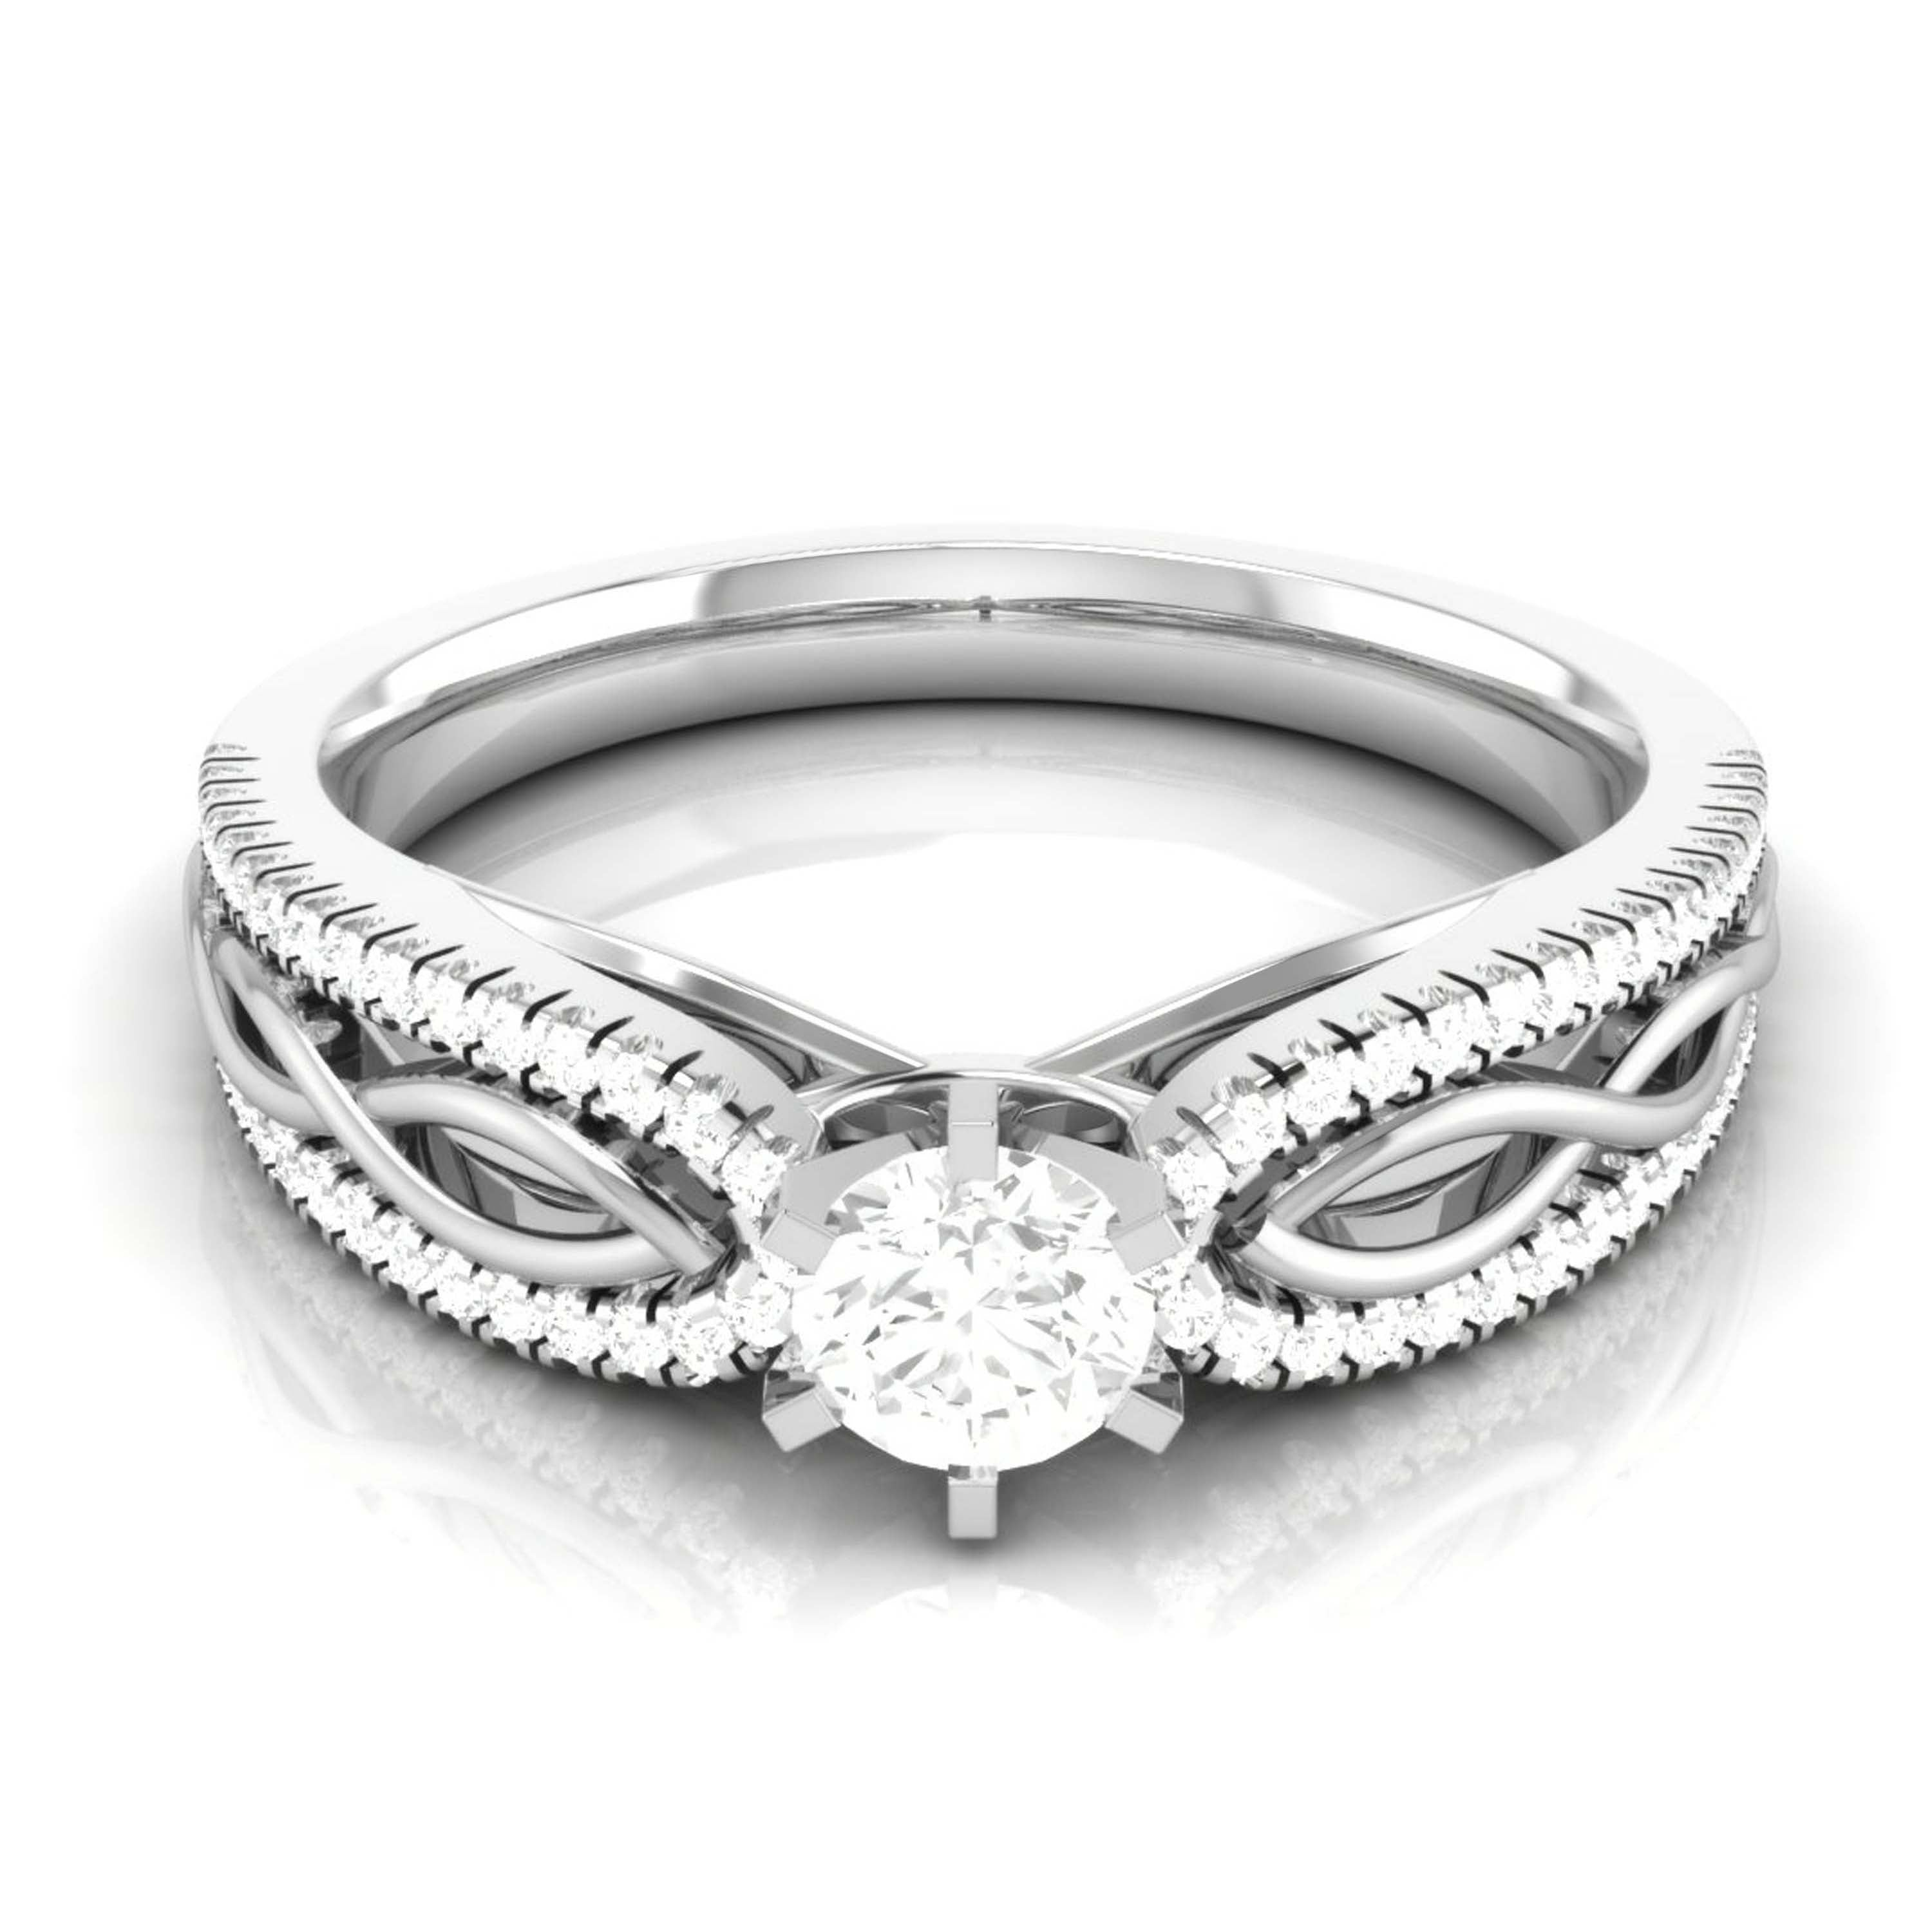 Designer Platinum Solitaire Engagement Ring with Infinity Shank for Women JL PT R-16